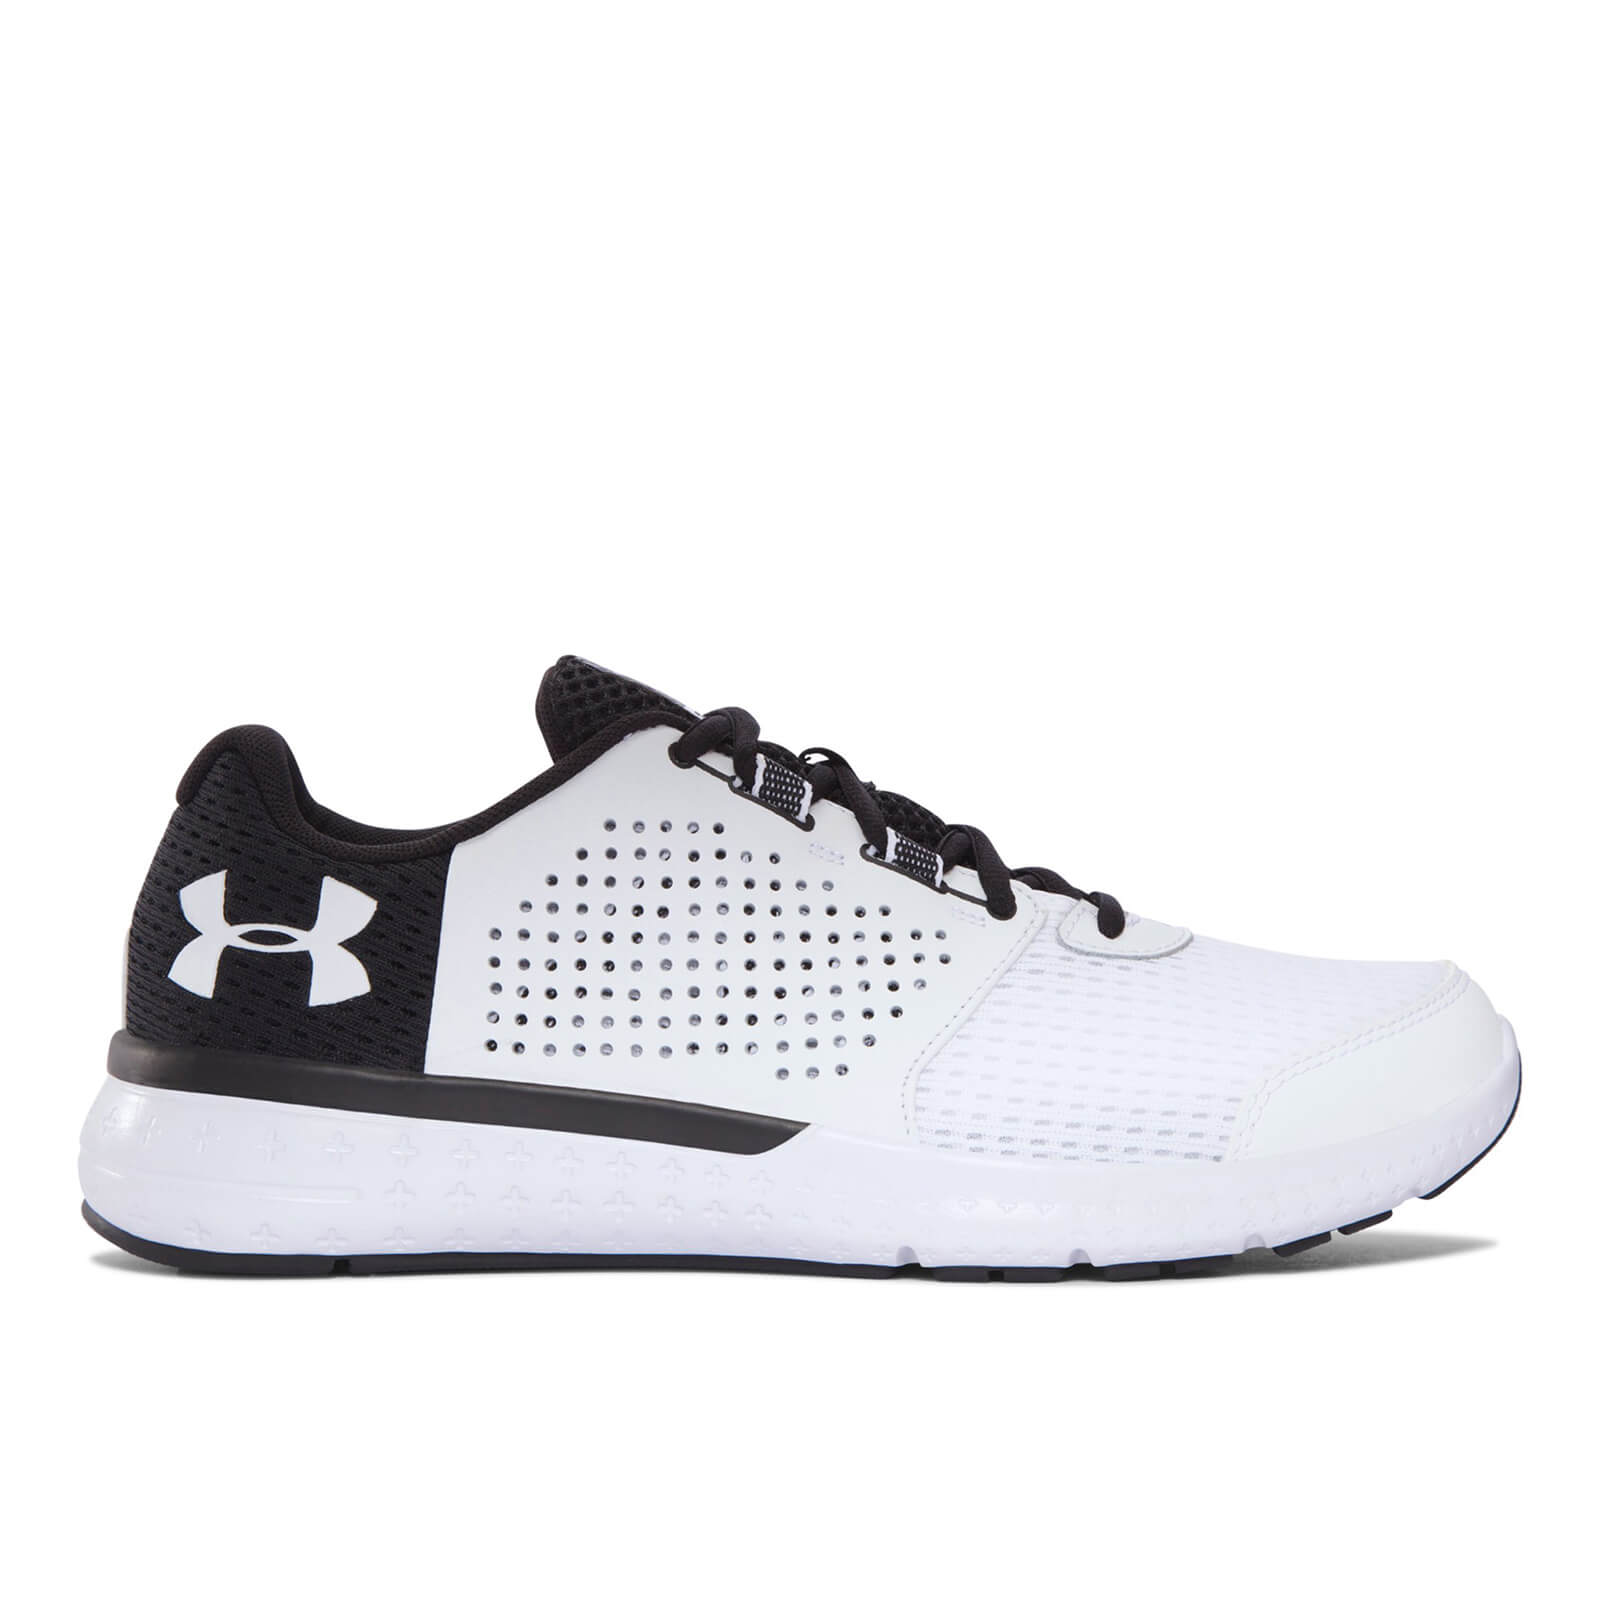 best sneakers ac7be 80d5e Under Armour Men's Micro G Fuel Running Shoes - White/Black